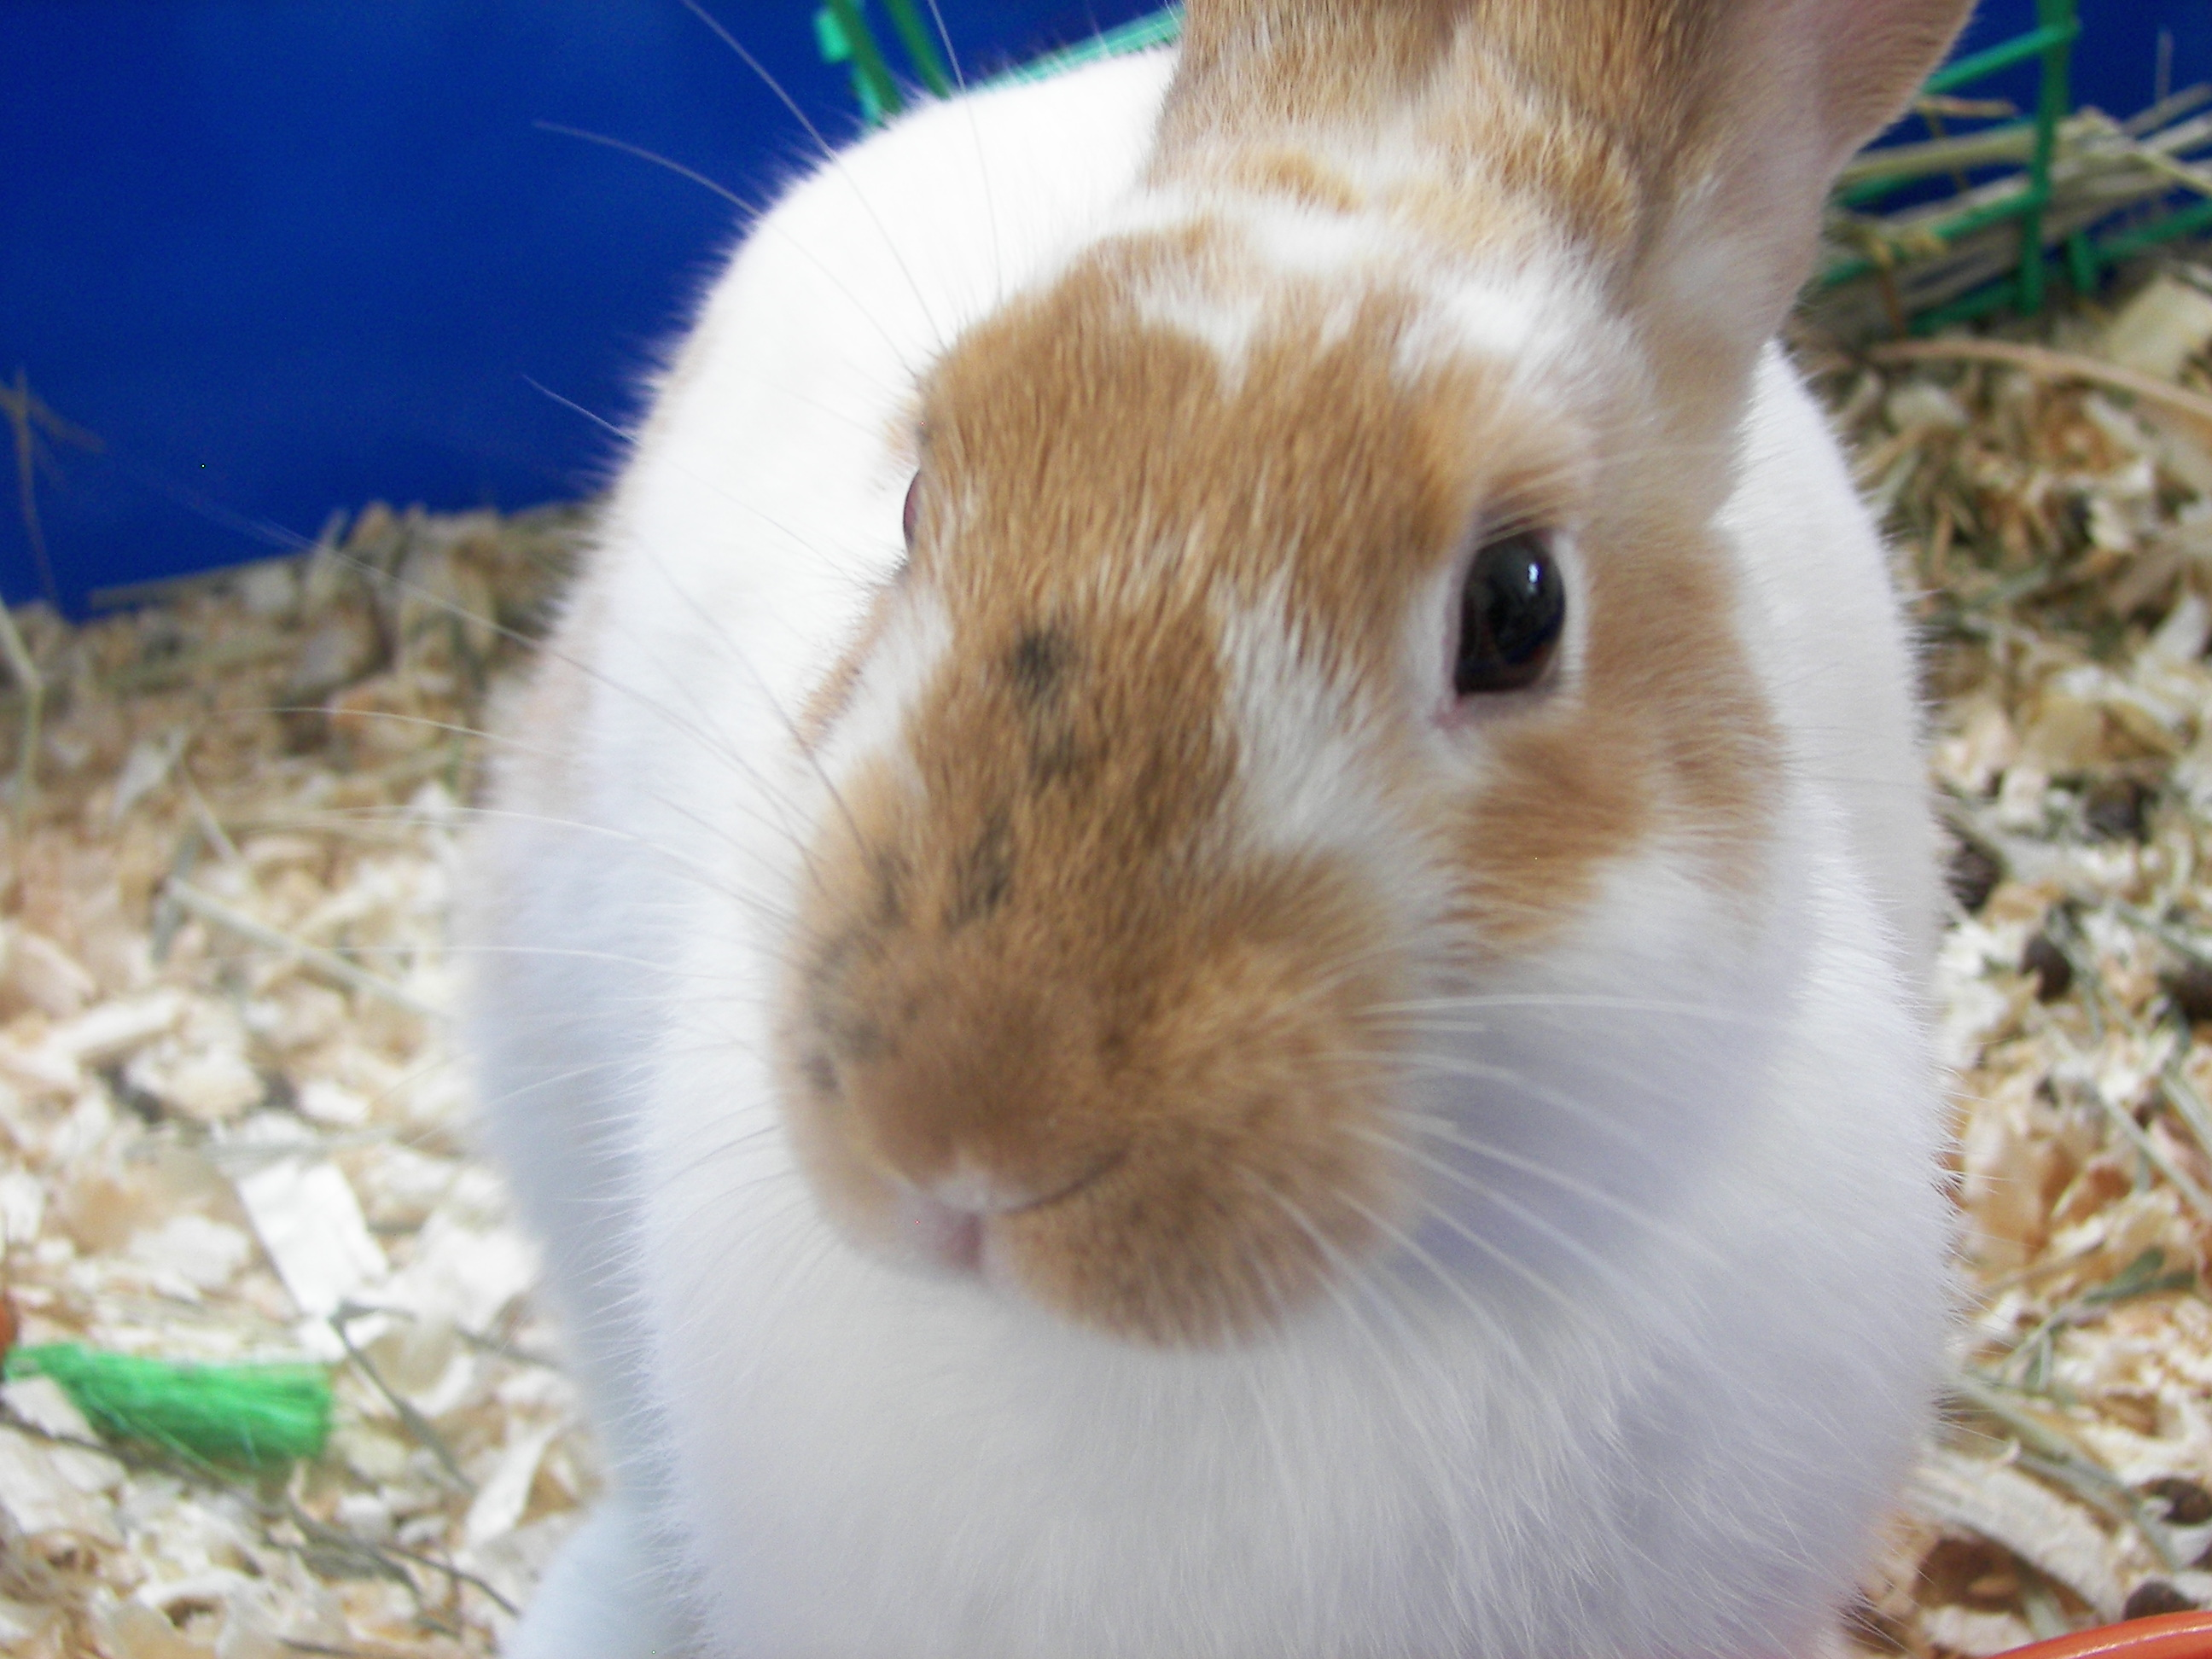 A Netherland dwarf rabbit called Butterscotch.